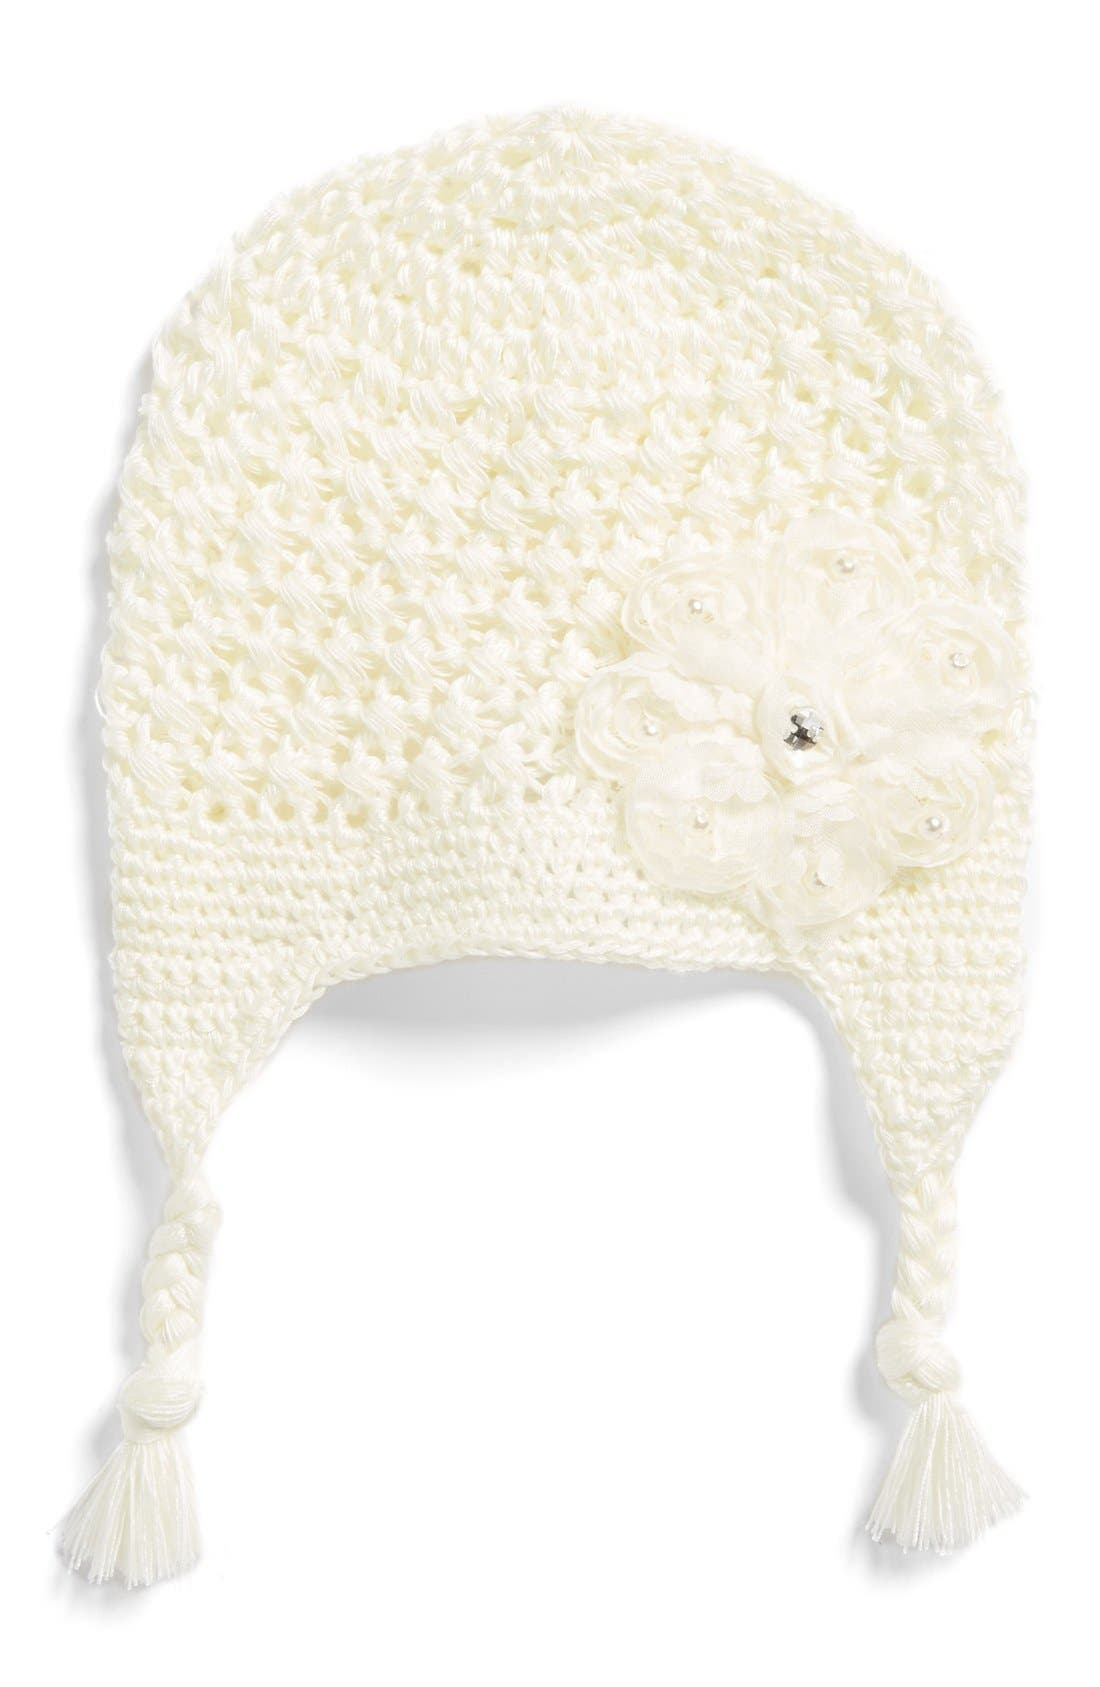 PLH Bows & Laces Crochet Hat,                             Main thumbnail 1, color,                             Ivory